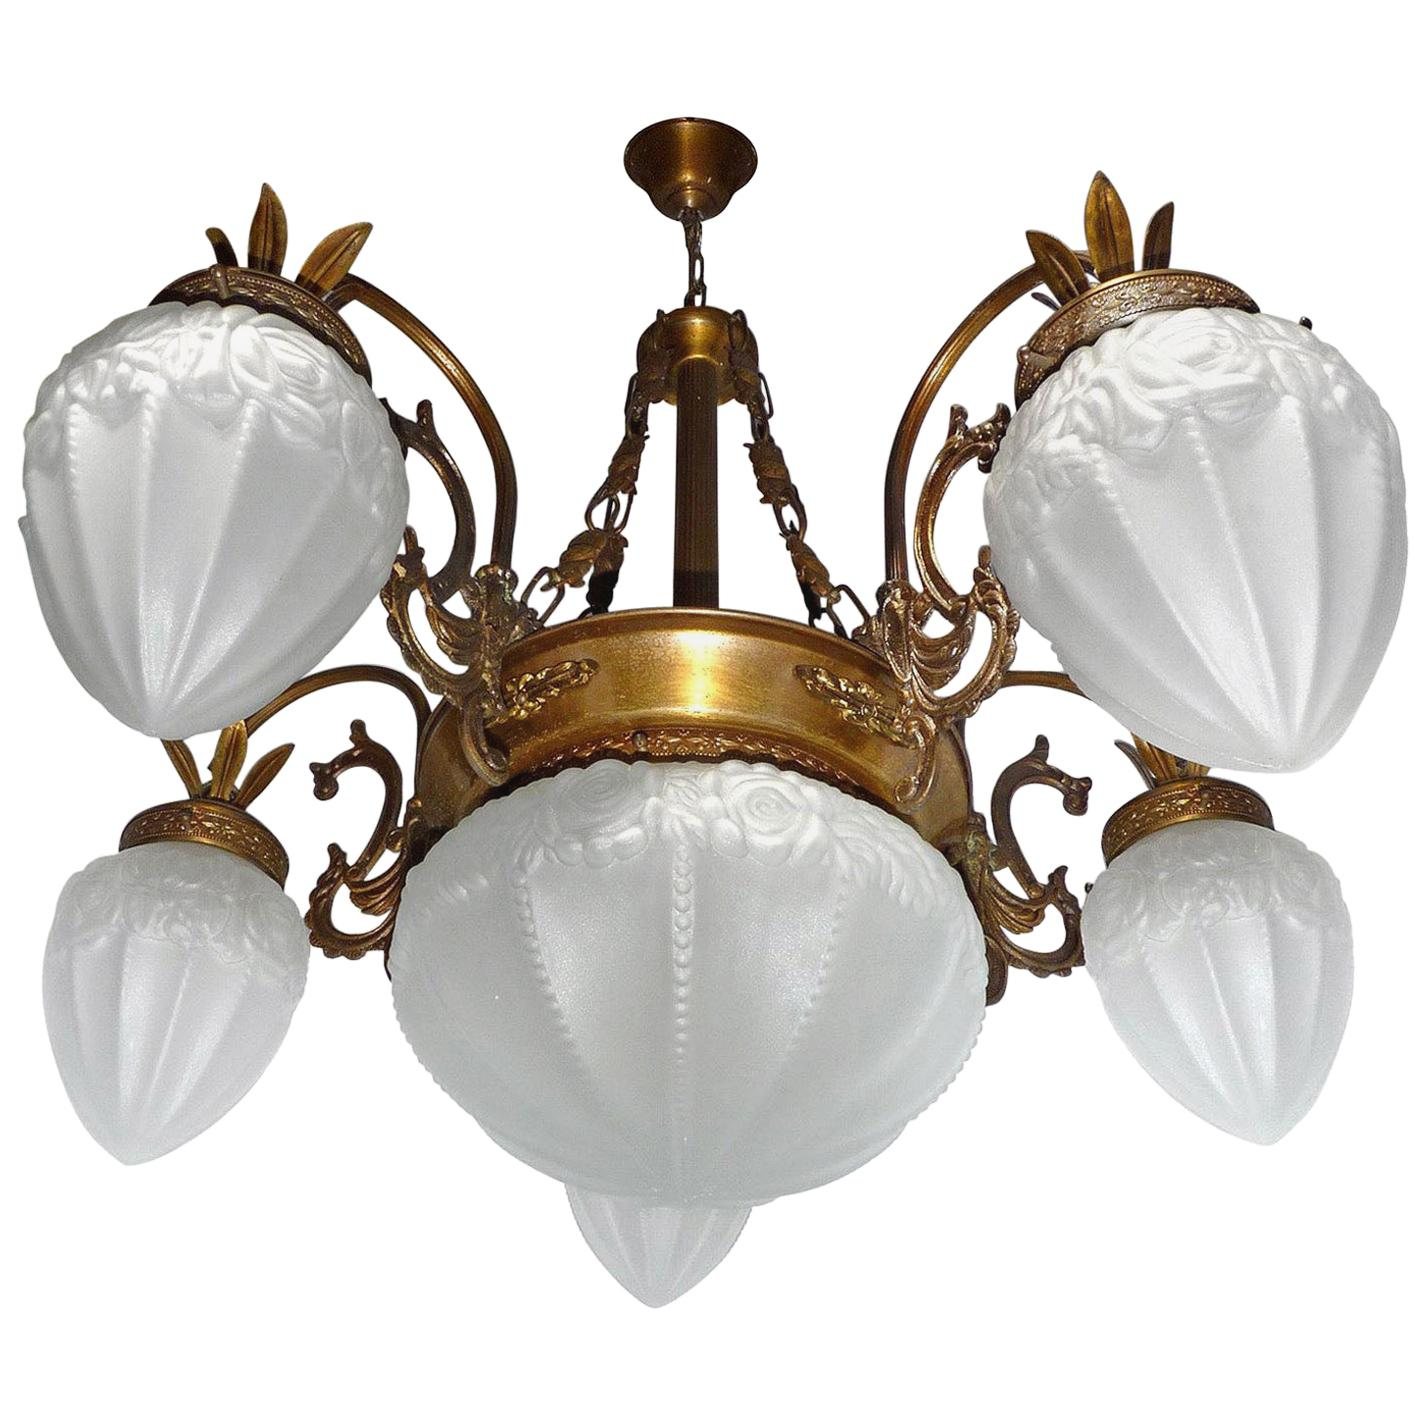 French Art Deco and Art Nouveau Brass and Frosted Glass Degué Style Chandelier